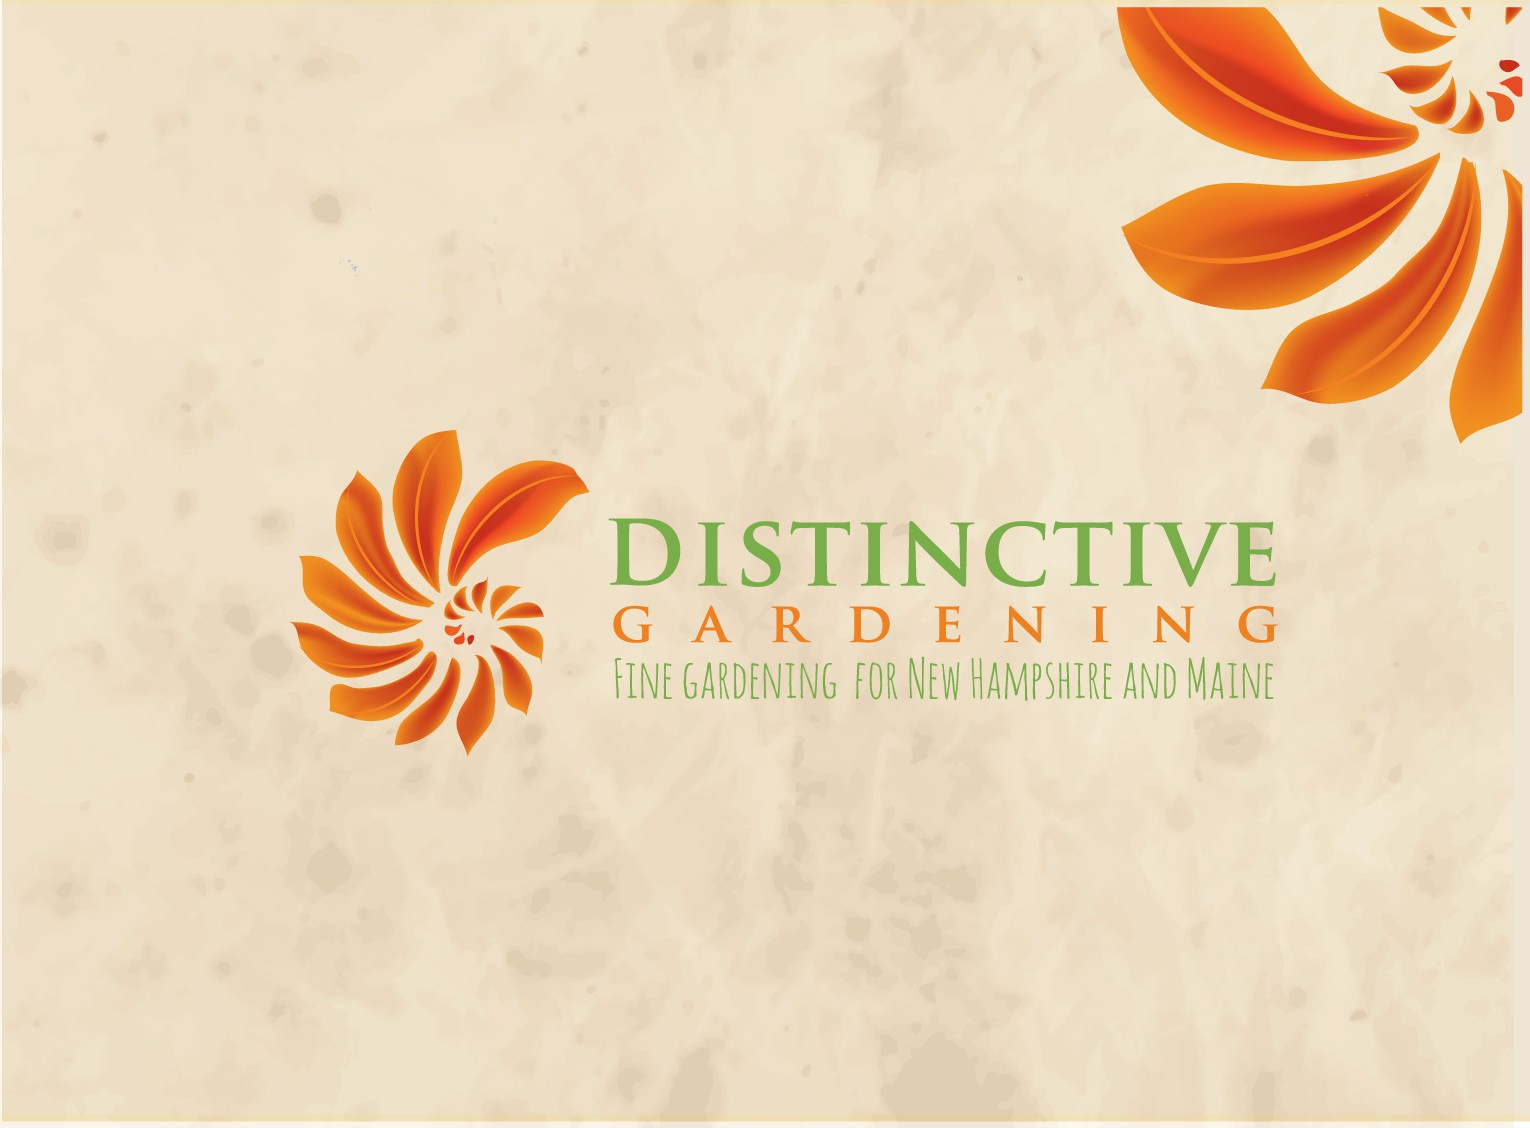 Grow us an exquisite logo and business card for Distinctive Gardening!